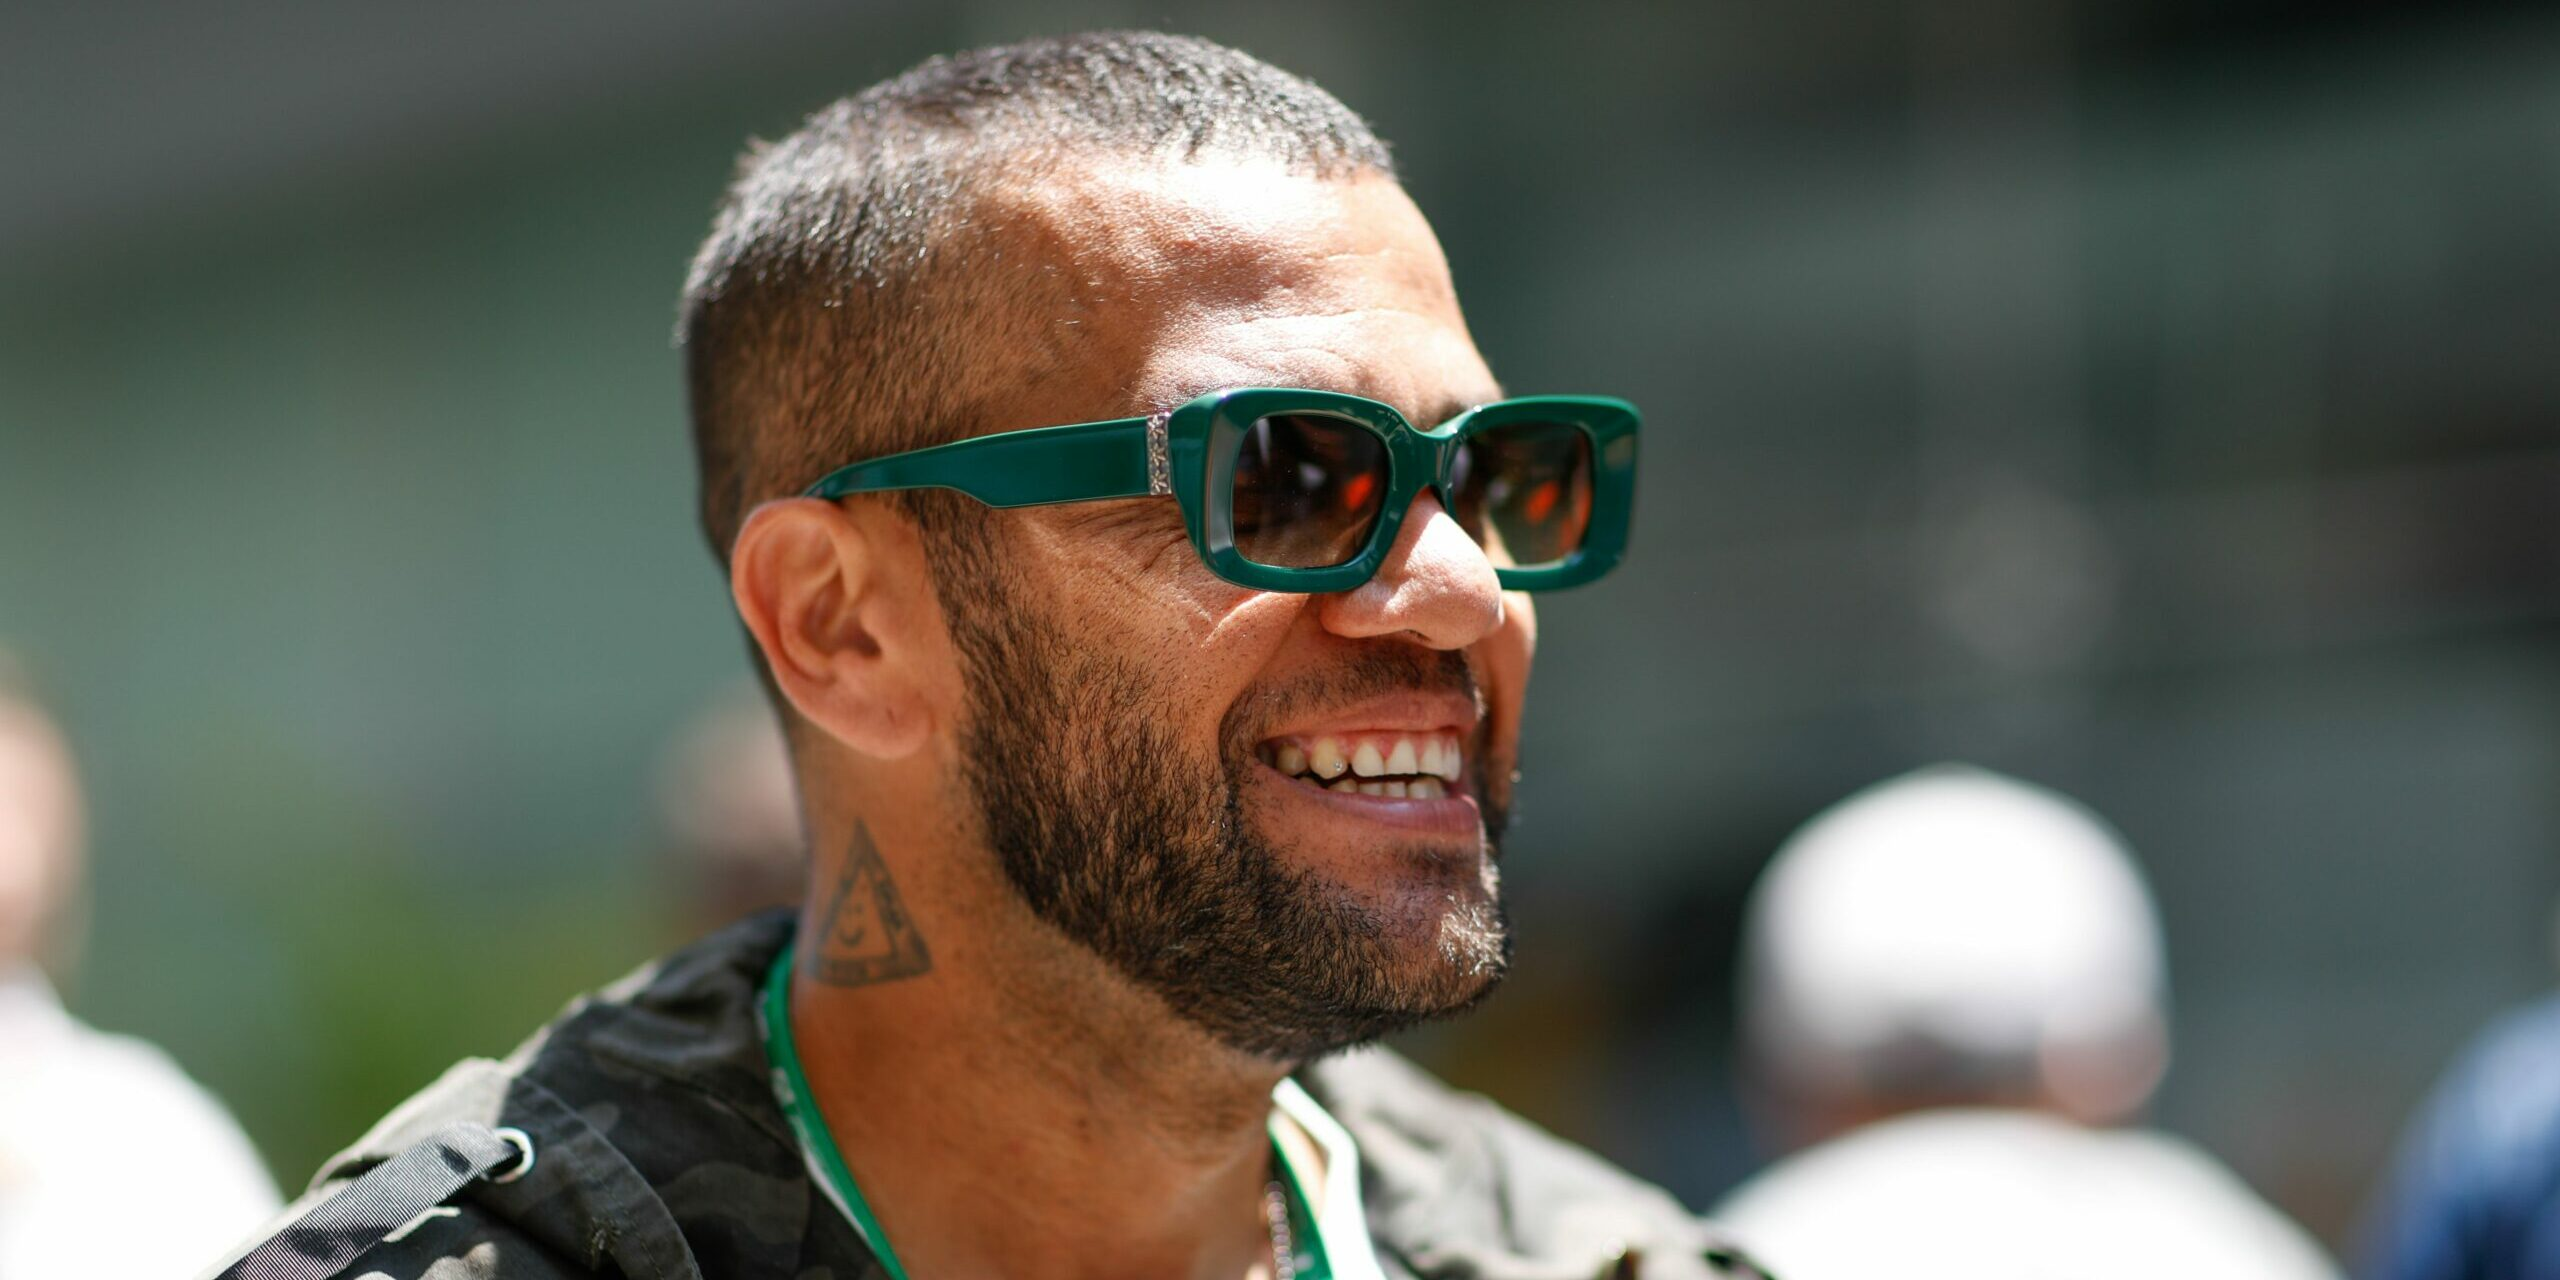 Dani Alves, en arxiu . Europa Press